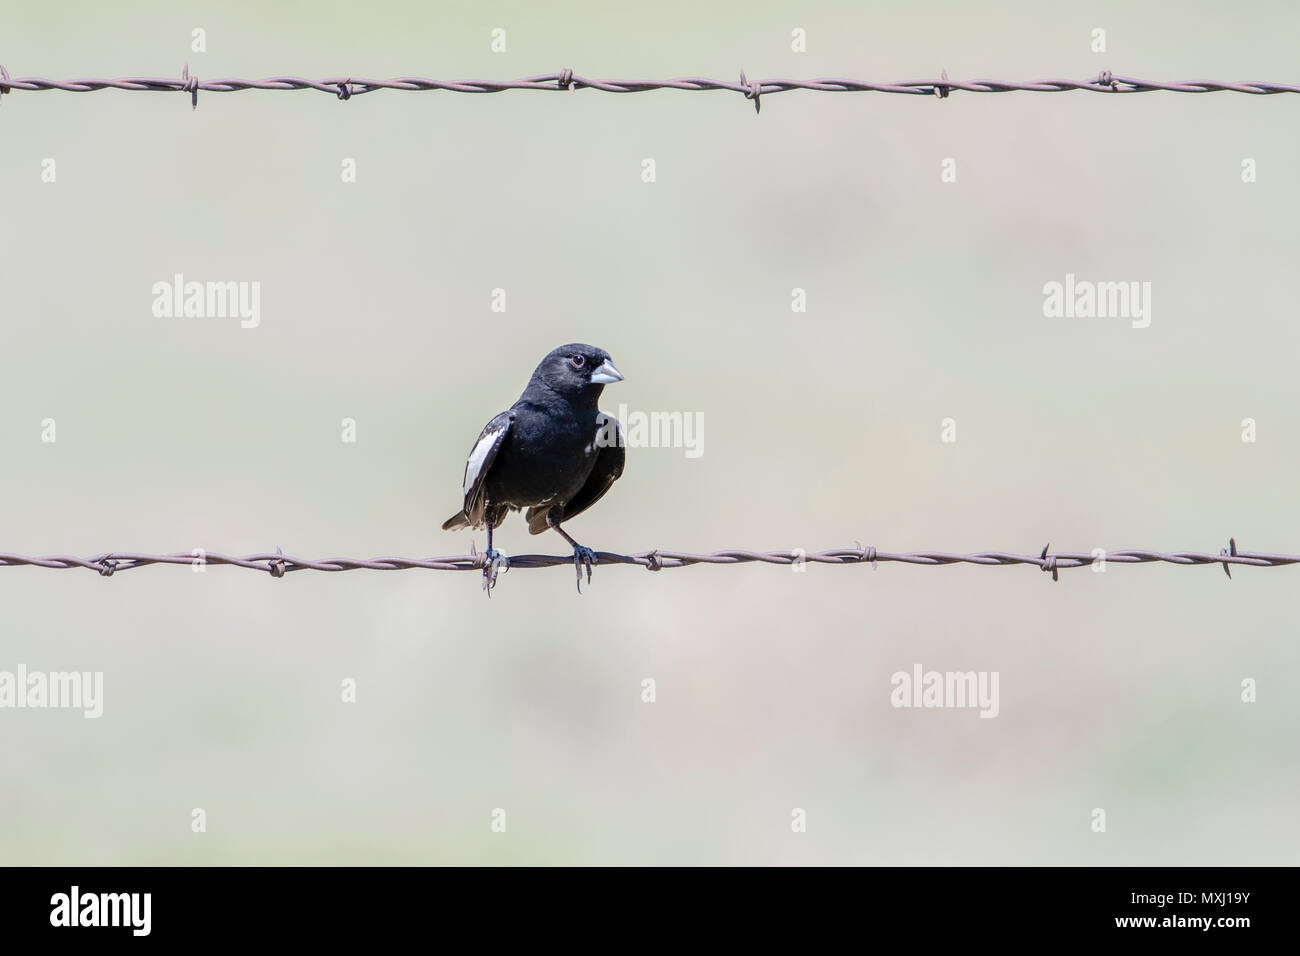 Male Lark Bunting (Calamospiza melanocorys) Perched on Barbed Wire on the Grasslands of Colorado - Stock Image